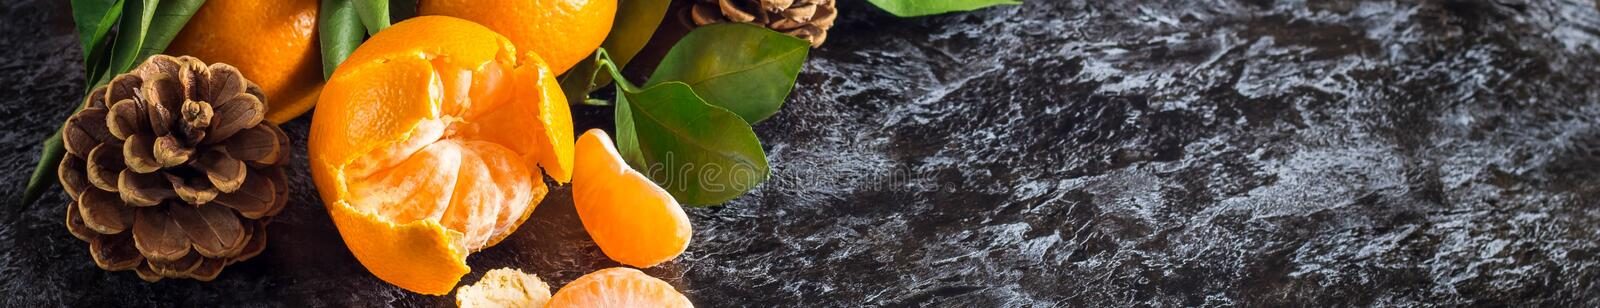 Banner of orange tangerines with green leaves on dark background with copy space. Peeled mandarin slices and cones stock photos